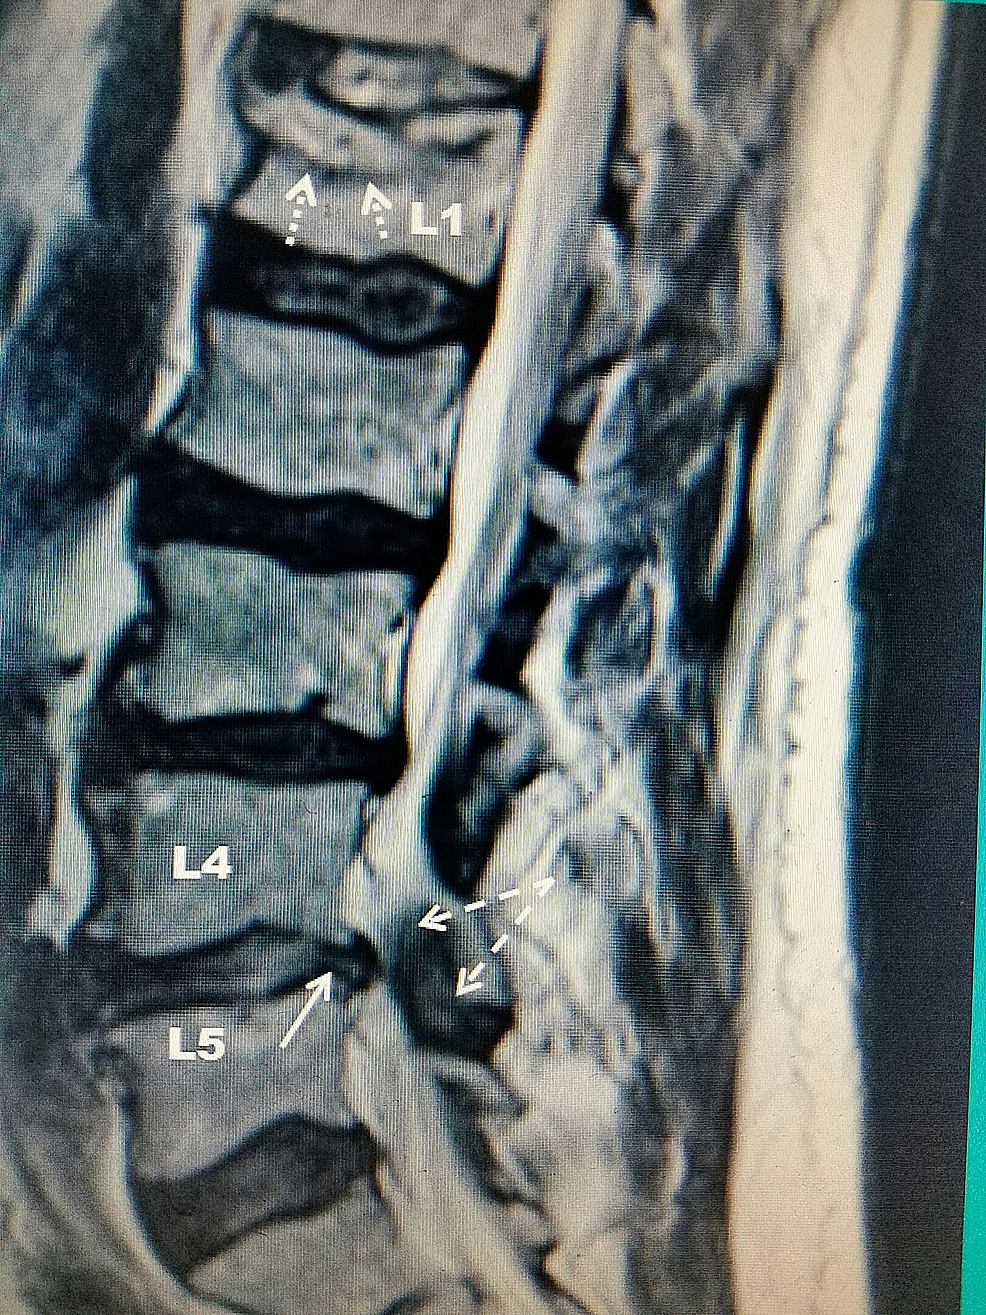 T2-weighted-sagittal-MRI-demonstrating-a-L1-vertebral-compression-fracture-in-addition-to-L4/L5-central-spinal-stenosis